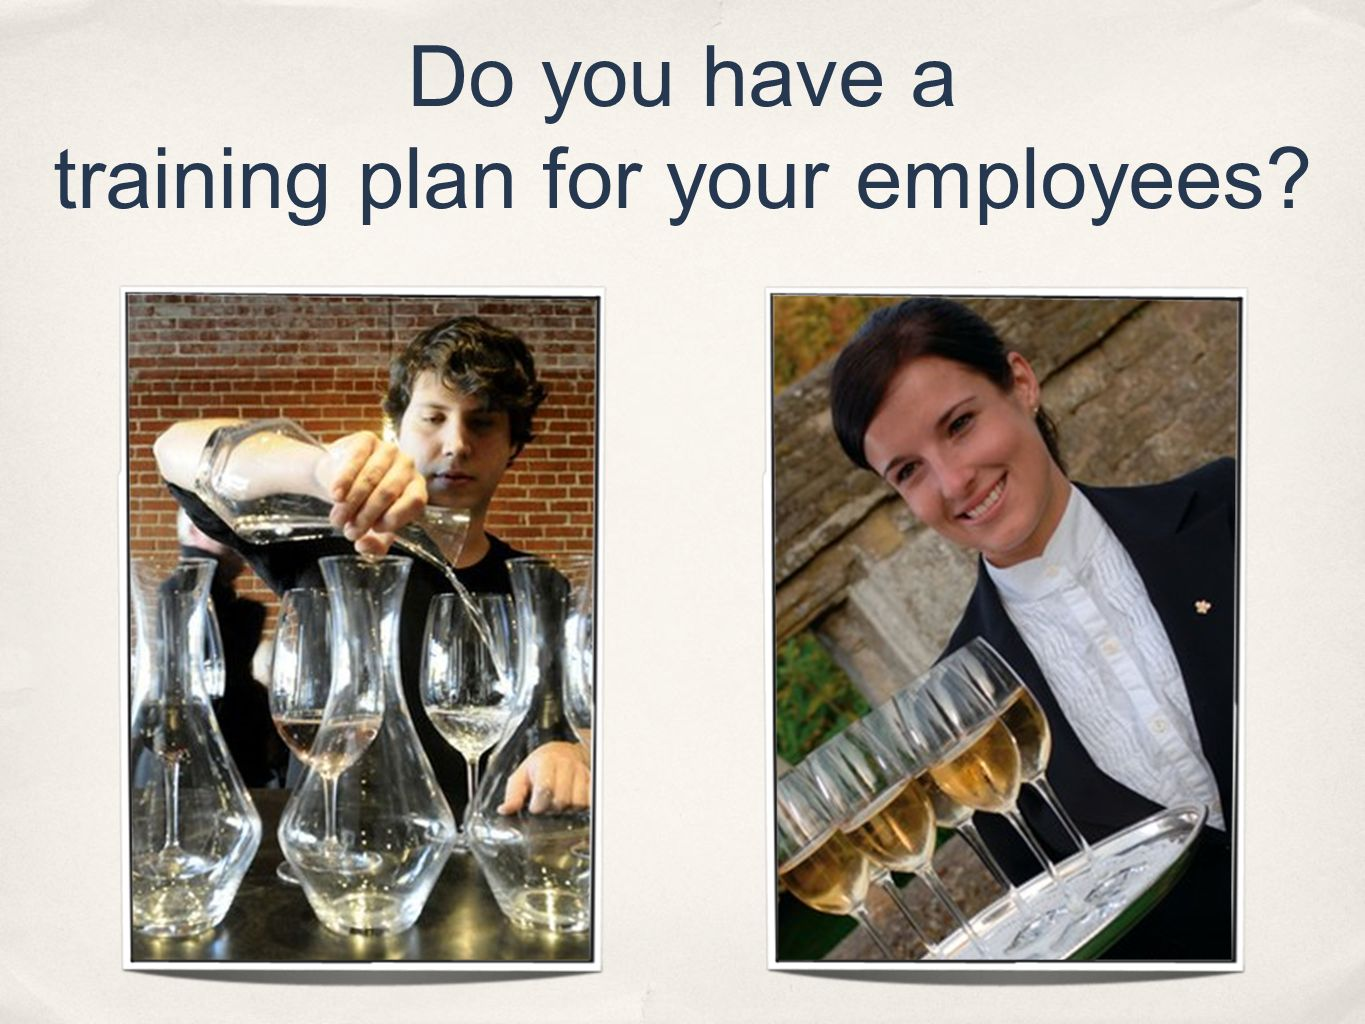 Do you have a training plan for your employees?